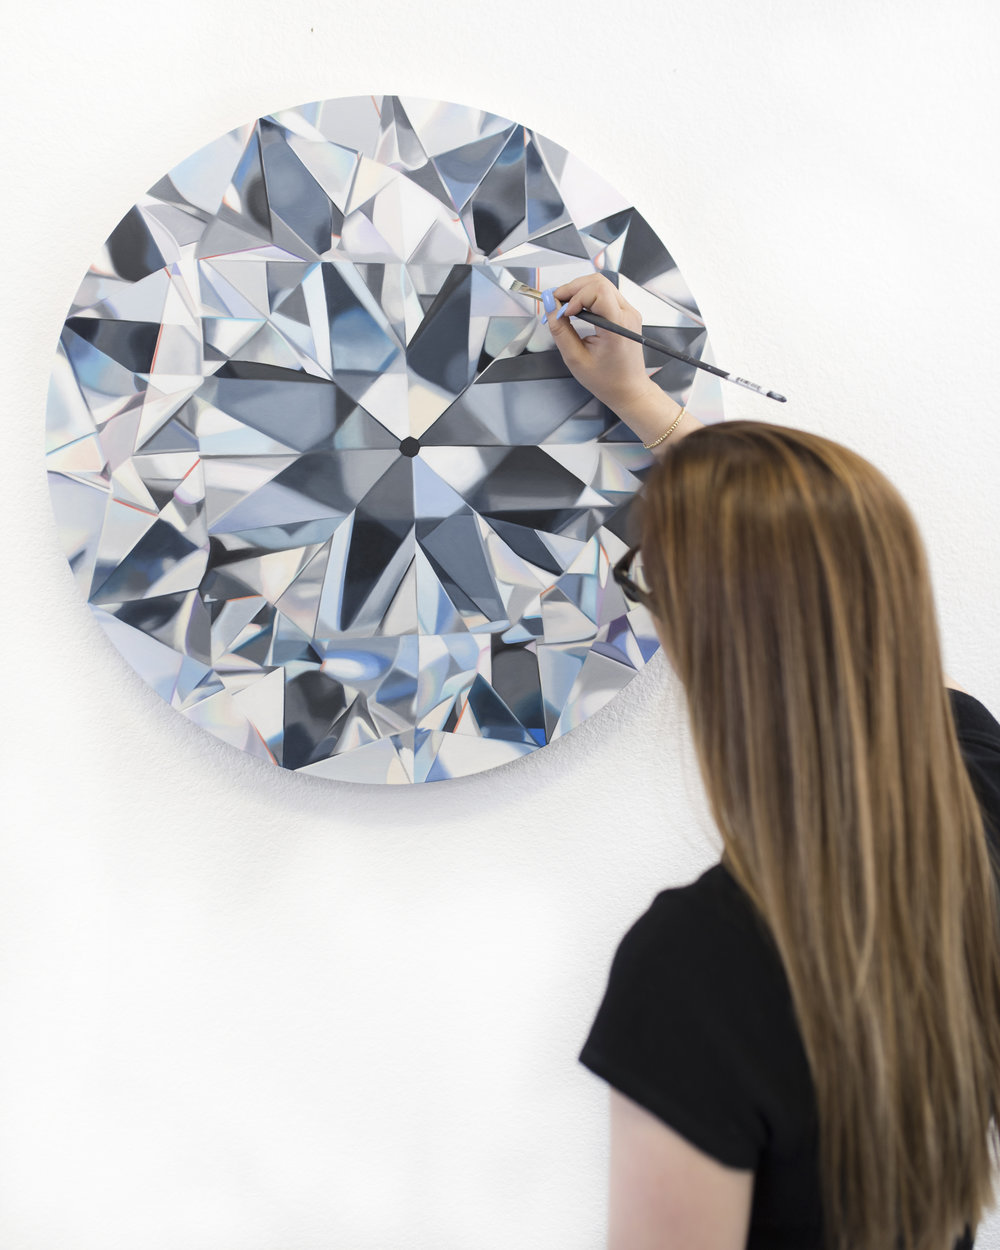 The diamond portraits are named after their owners. - The finished work of art allows us to appreciate the beauty of the diamond in a new way.Diamonds are symbolic of nature and romance ― now they are turned into a timeless work of art with a unique story.